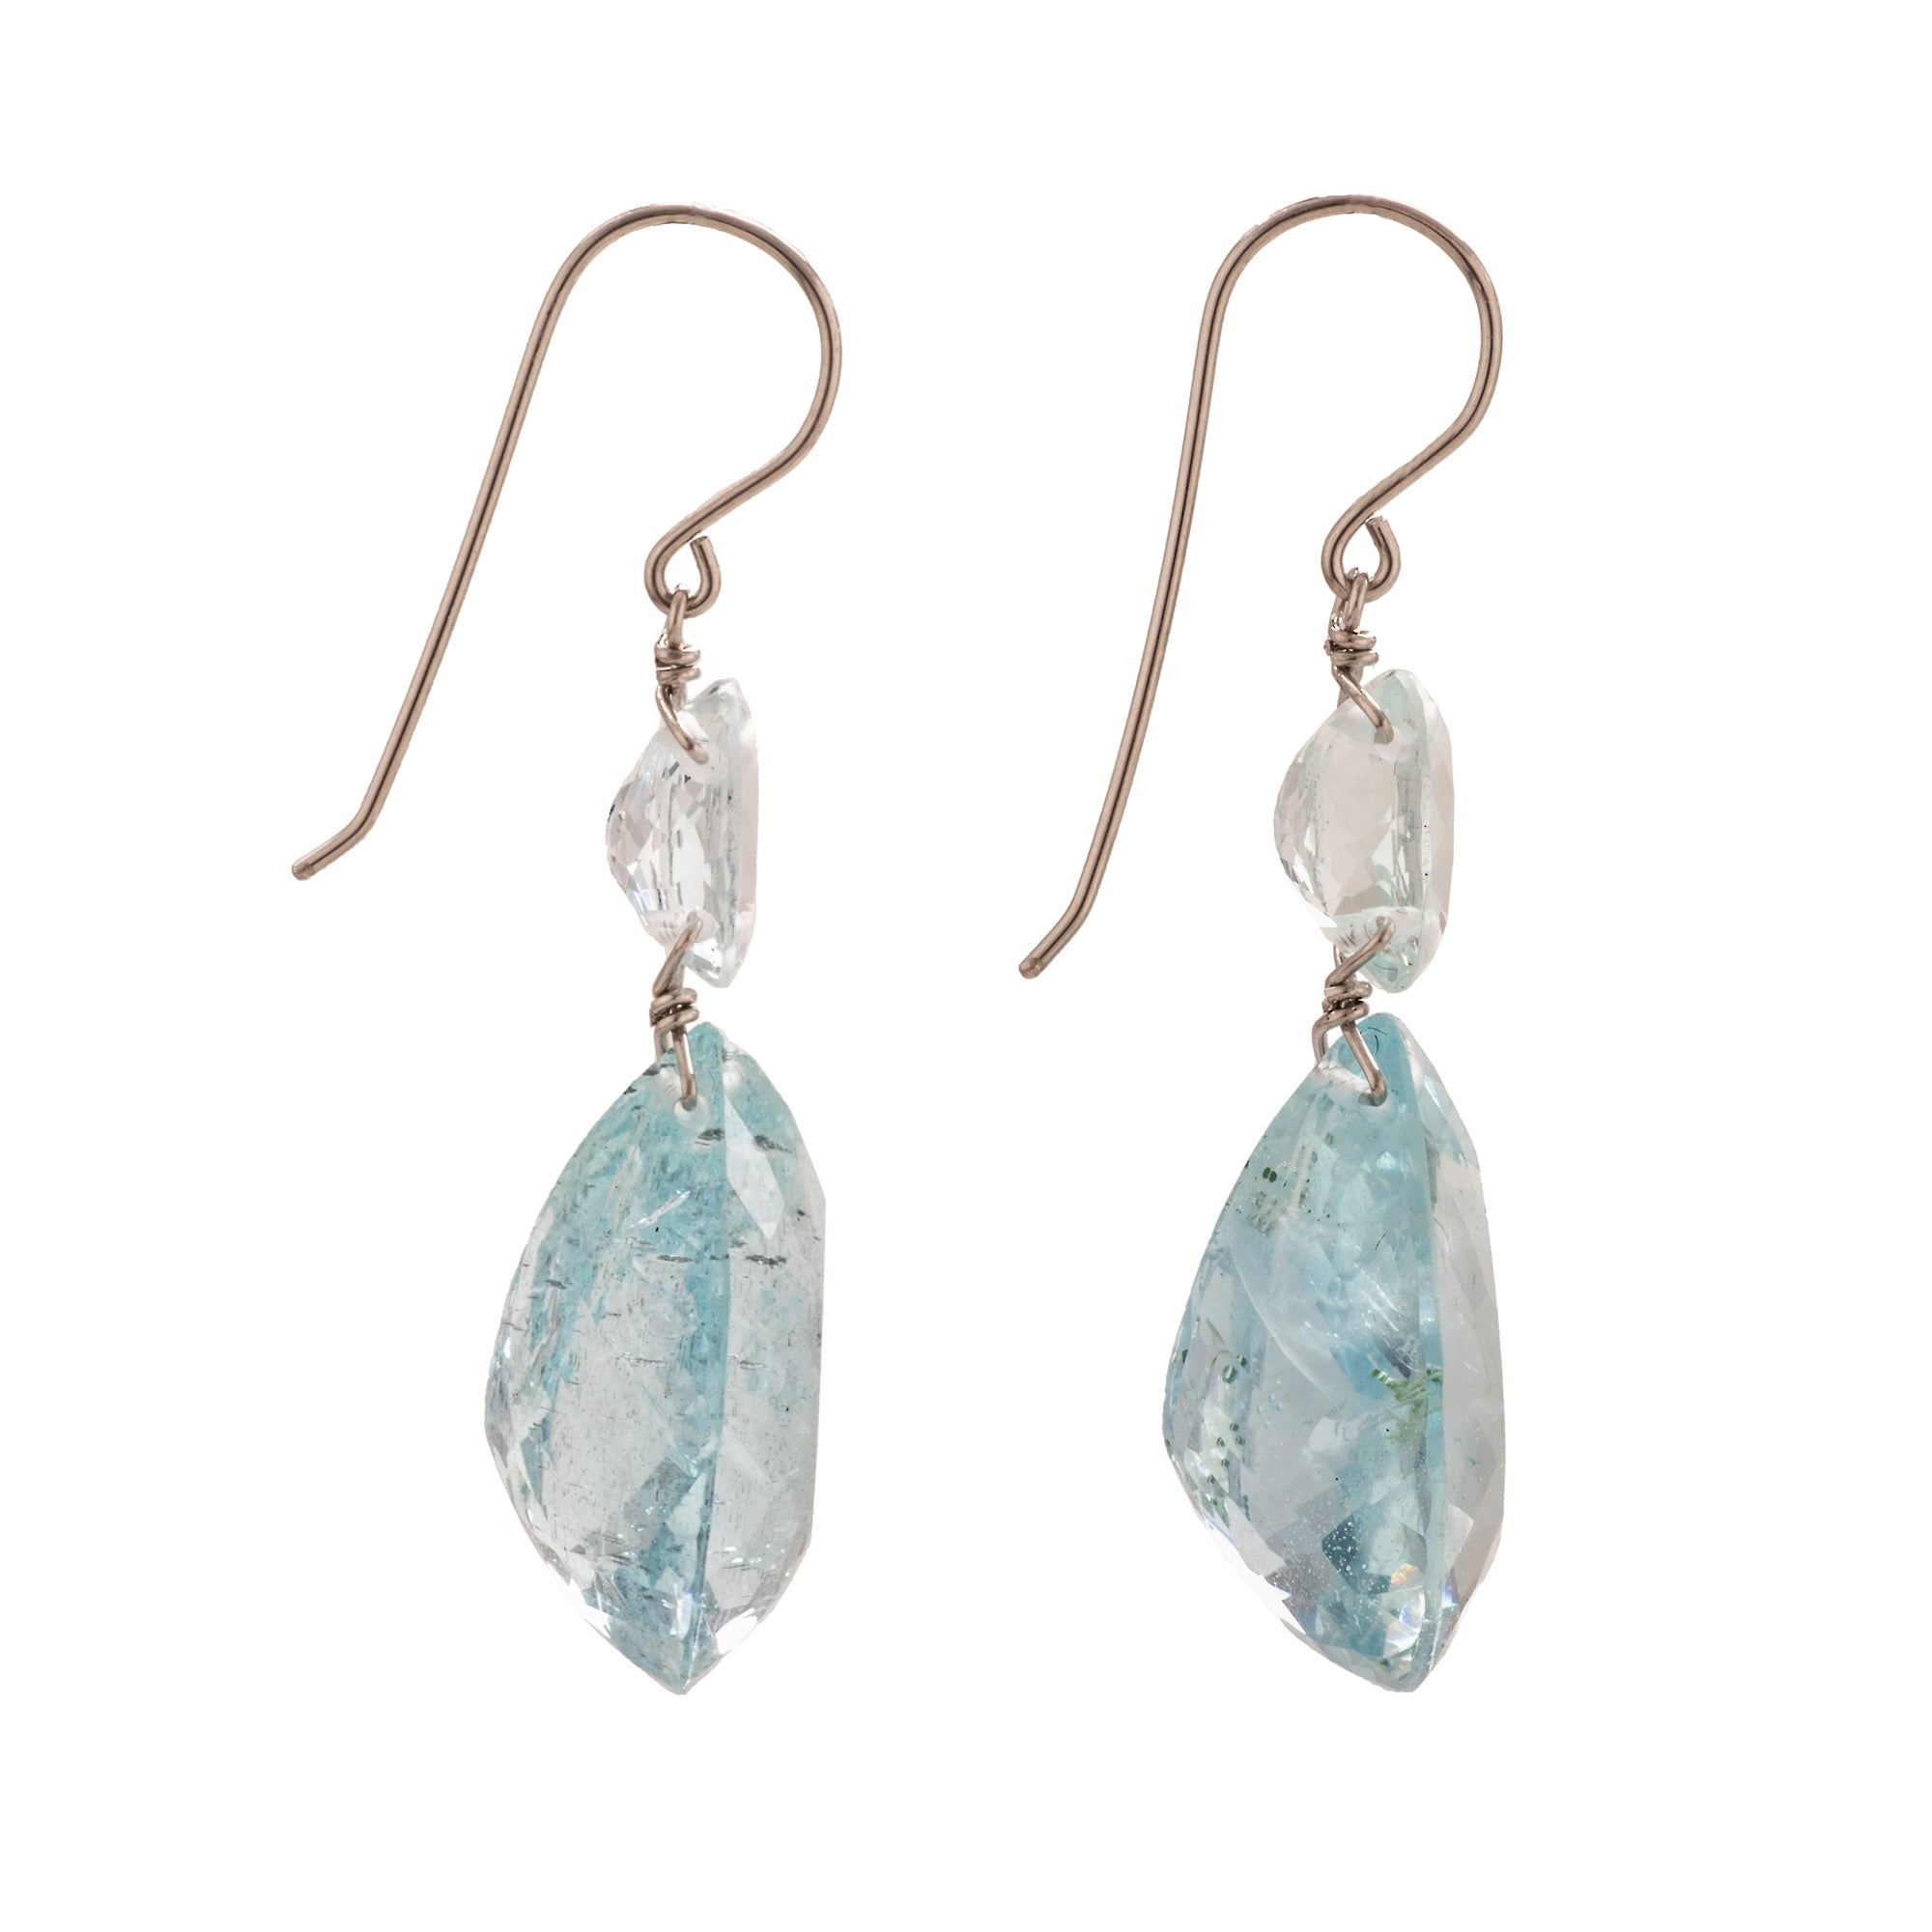 160cbc3c0 Tear oval ii aquamarine earrings – Maja DuBrul Jewelry